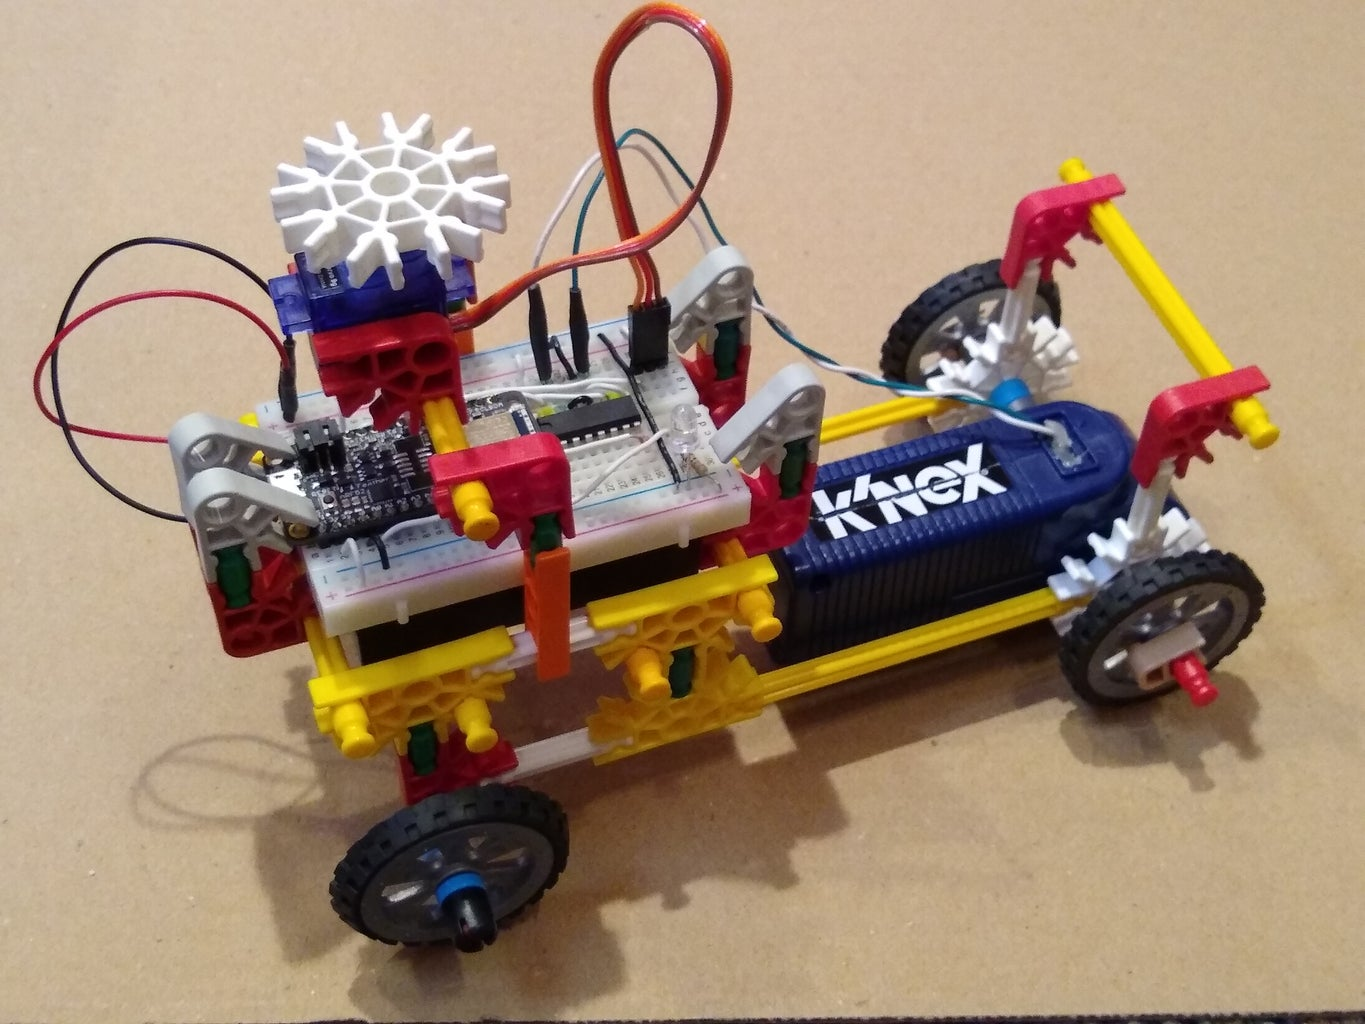 Control K'nex With a Mobile Phone